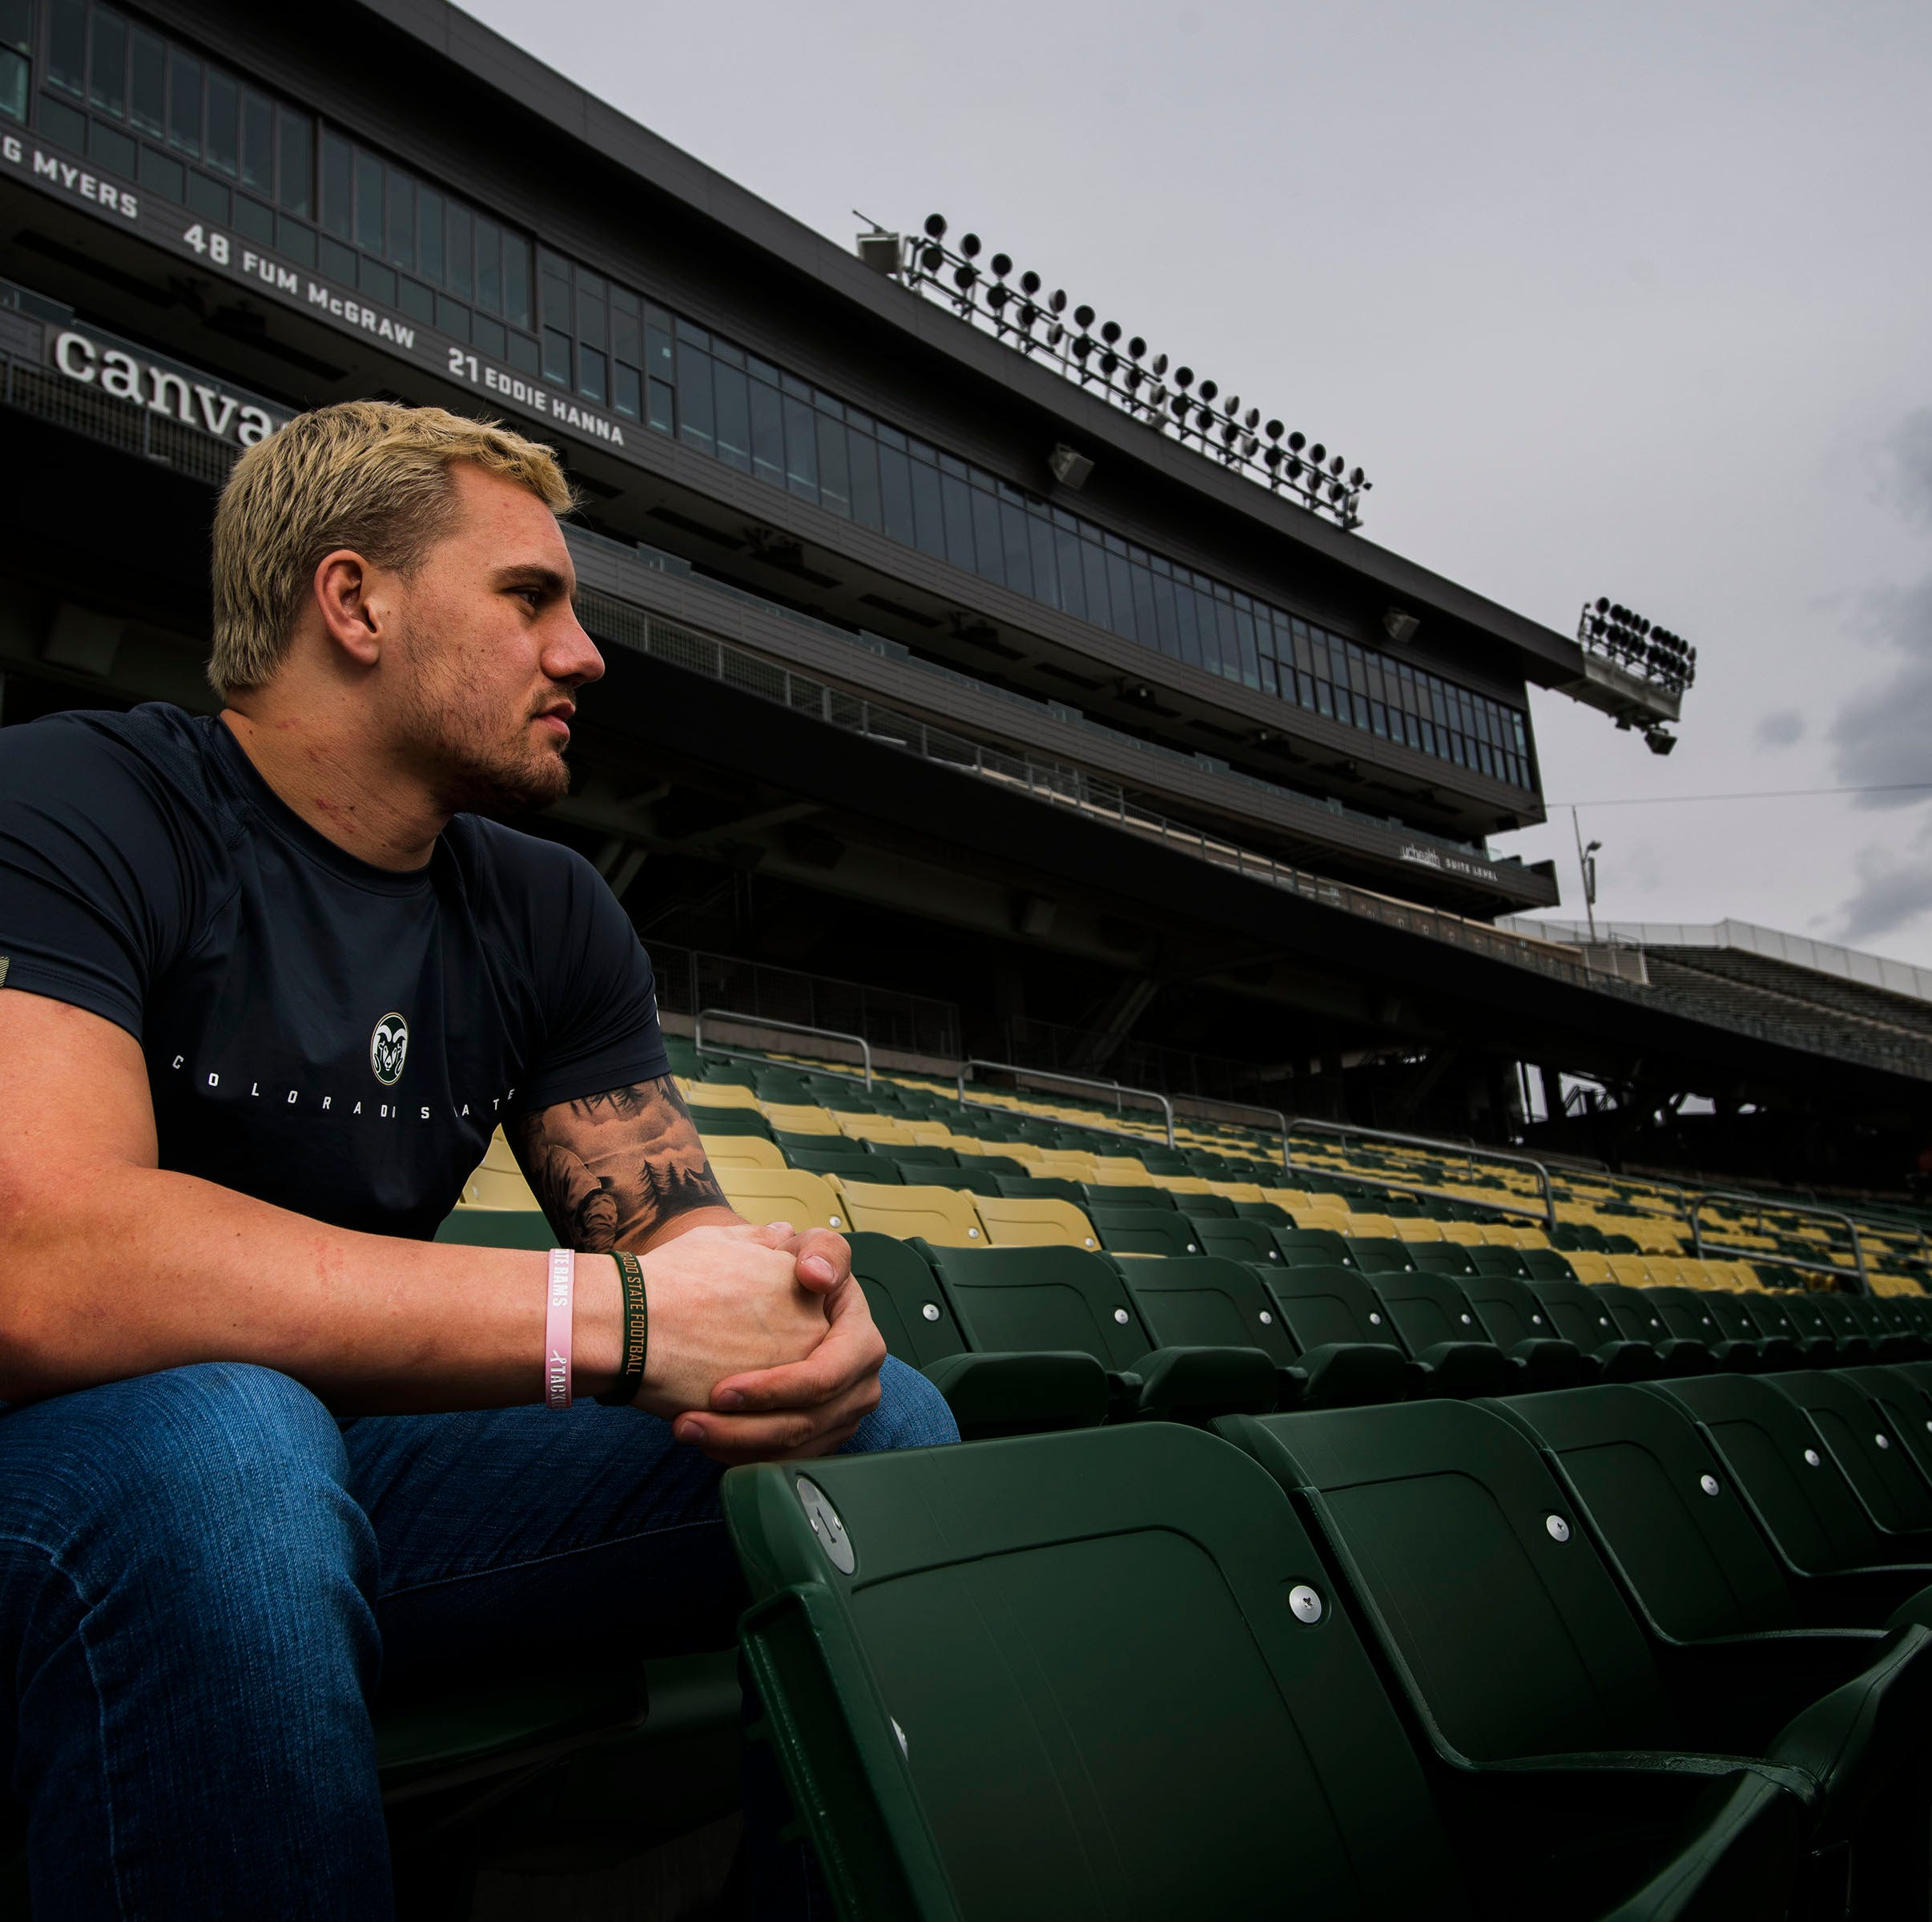 A different kind of strength: CSU linebacker Max McDonald shares his battle with anxiety